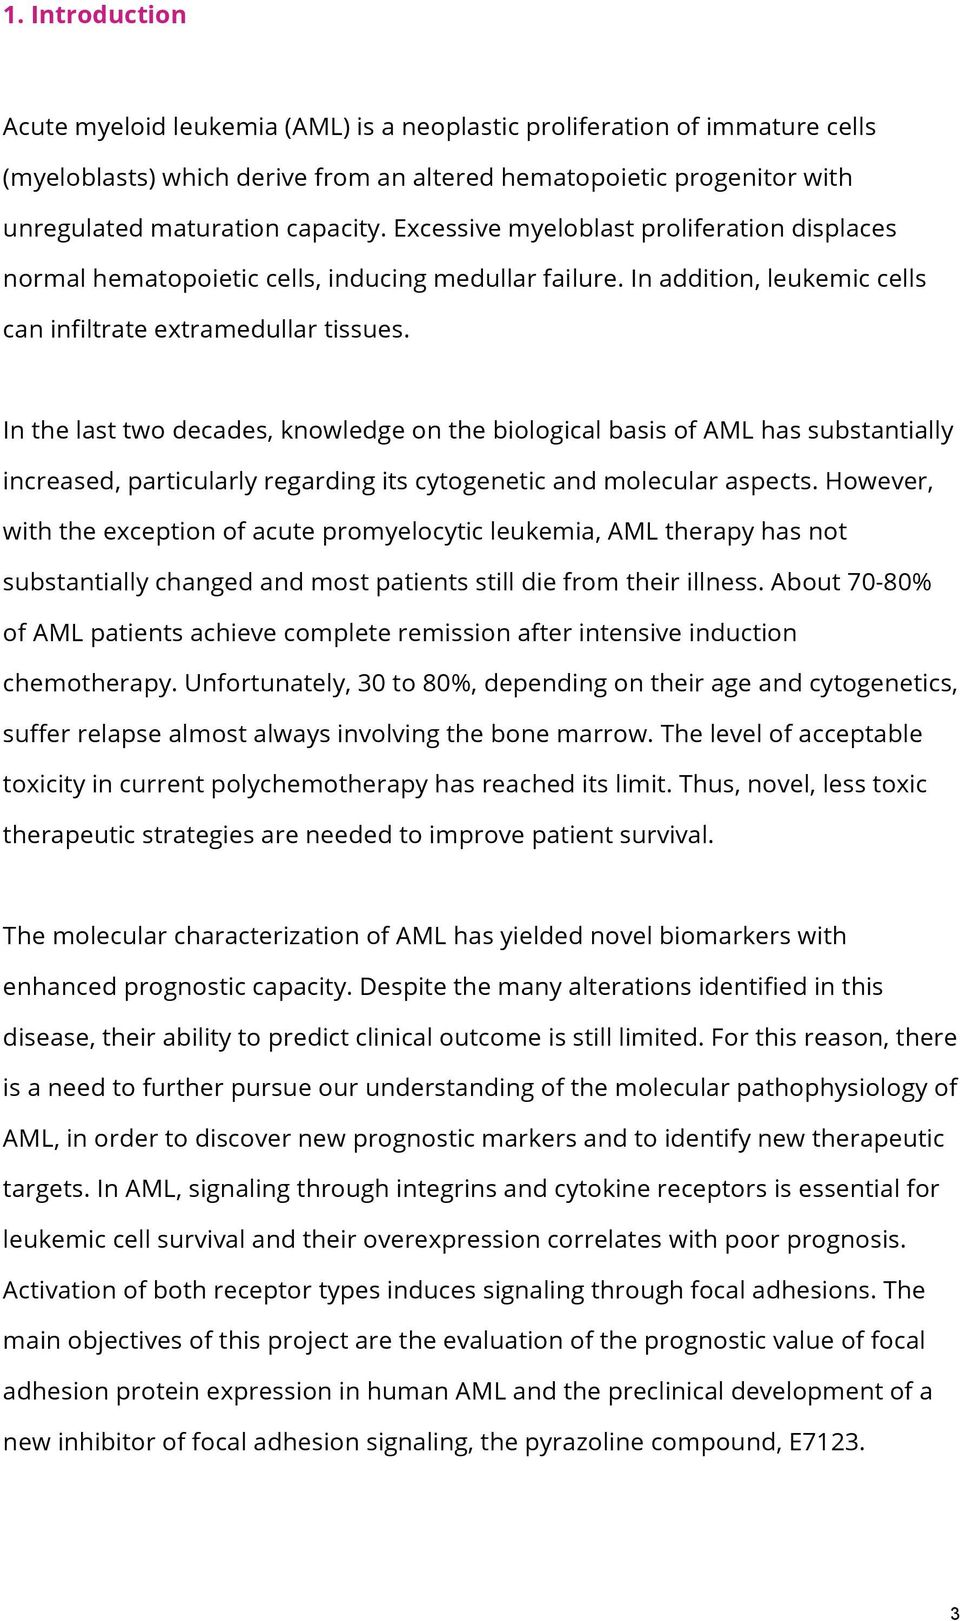 In the last two decades, knowledge on the biological basis of AML has substantially increased, particularly regarding its cytogenetic and molecular aspects.